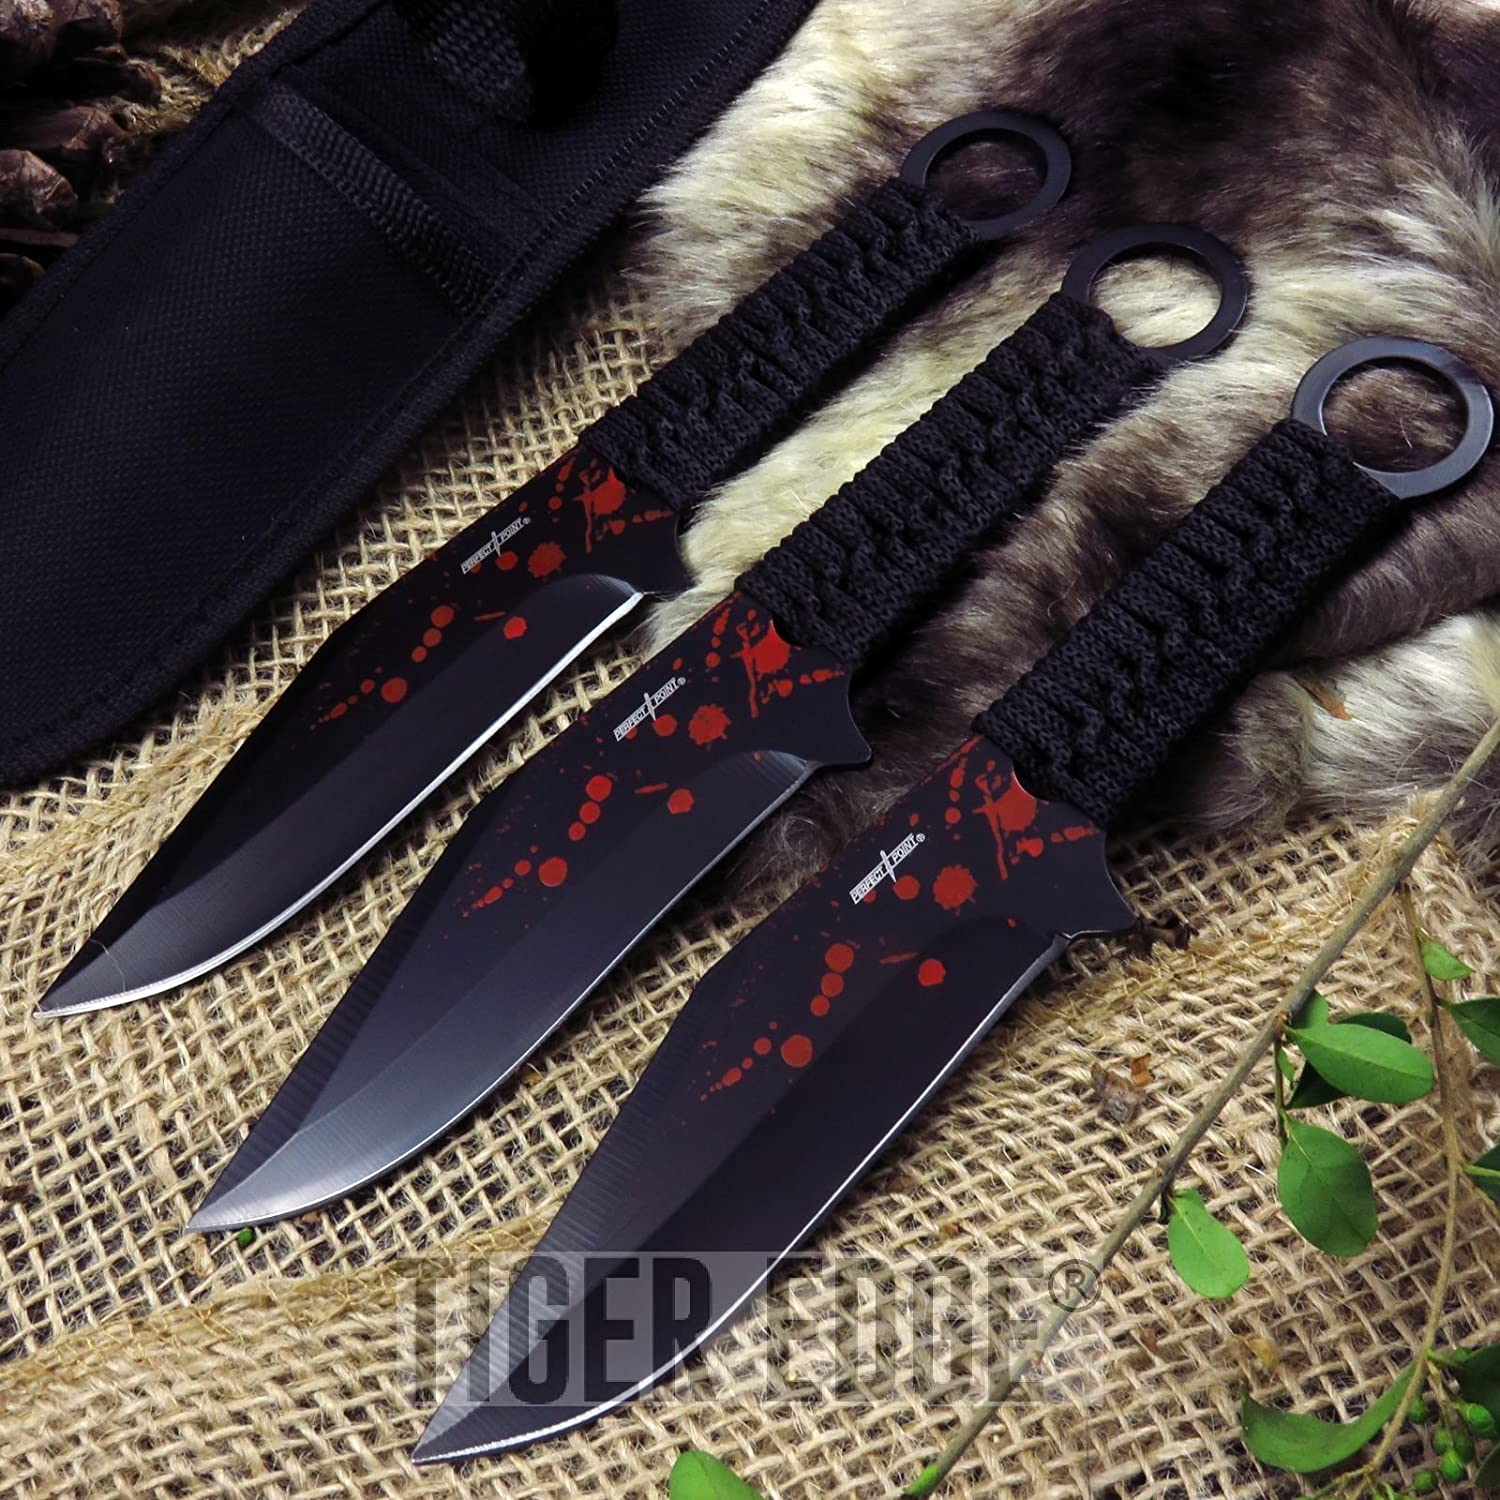 "New THROWING ProTactical'US - Limited Edition - Elite Knife with Sharp Blade Perfect Point 7. 5"" Red Tactical Zombie Ninja 3pc Set + Sheath"